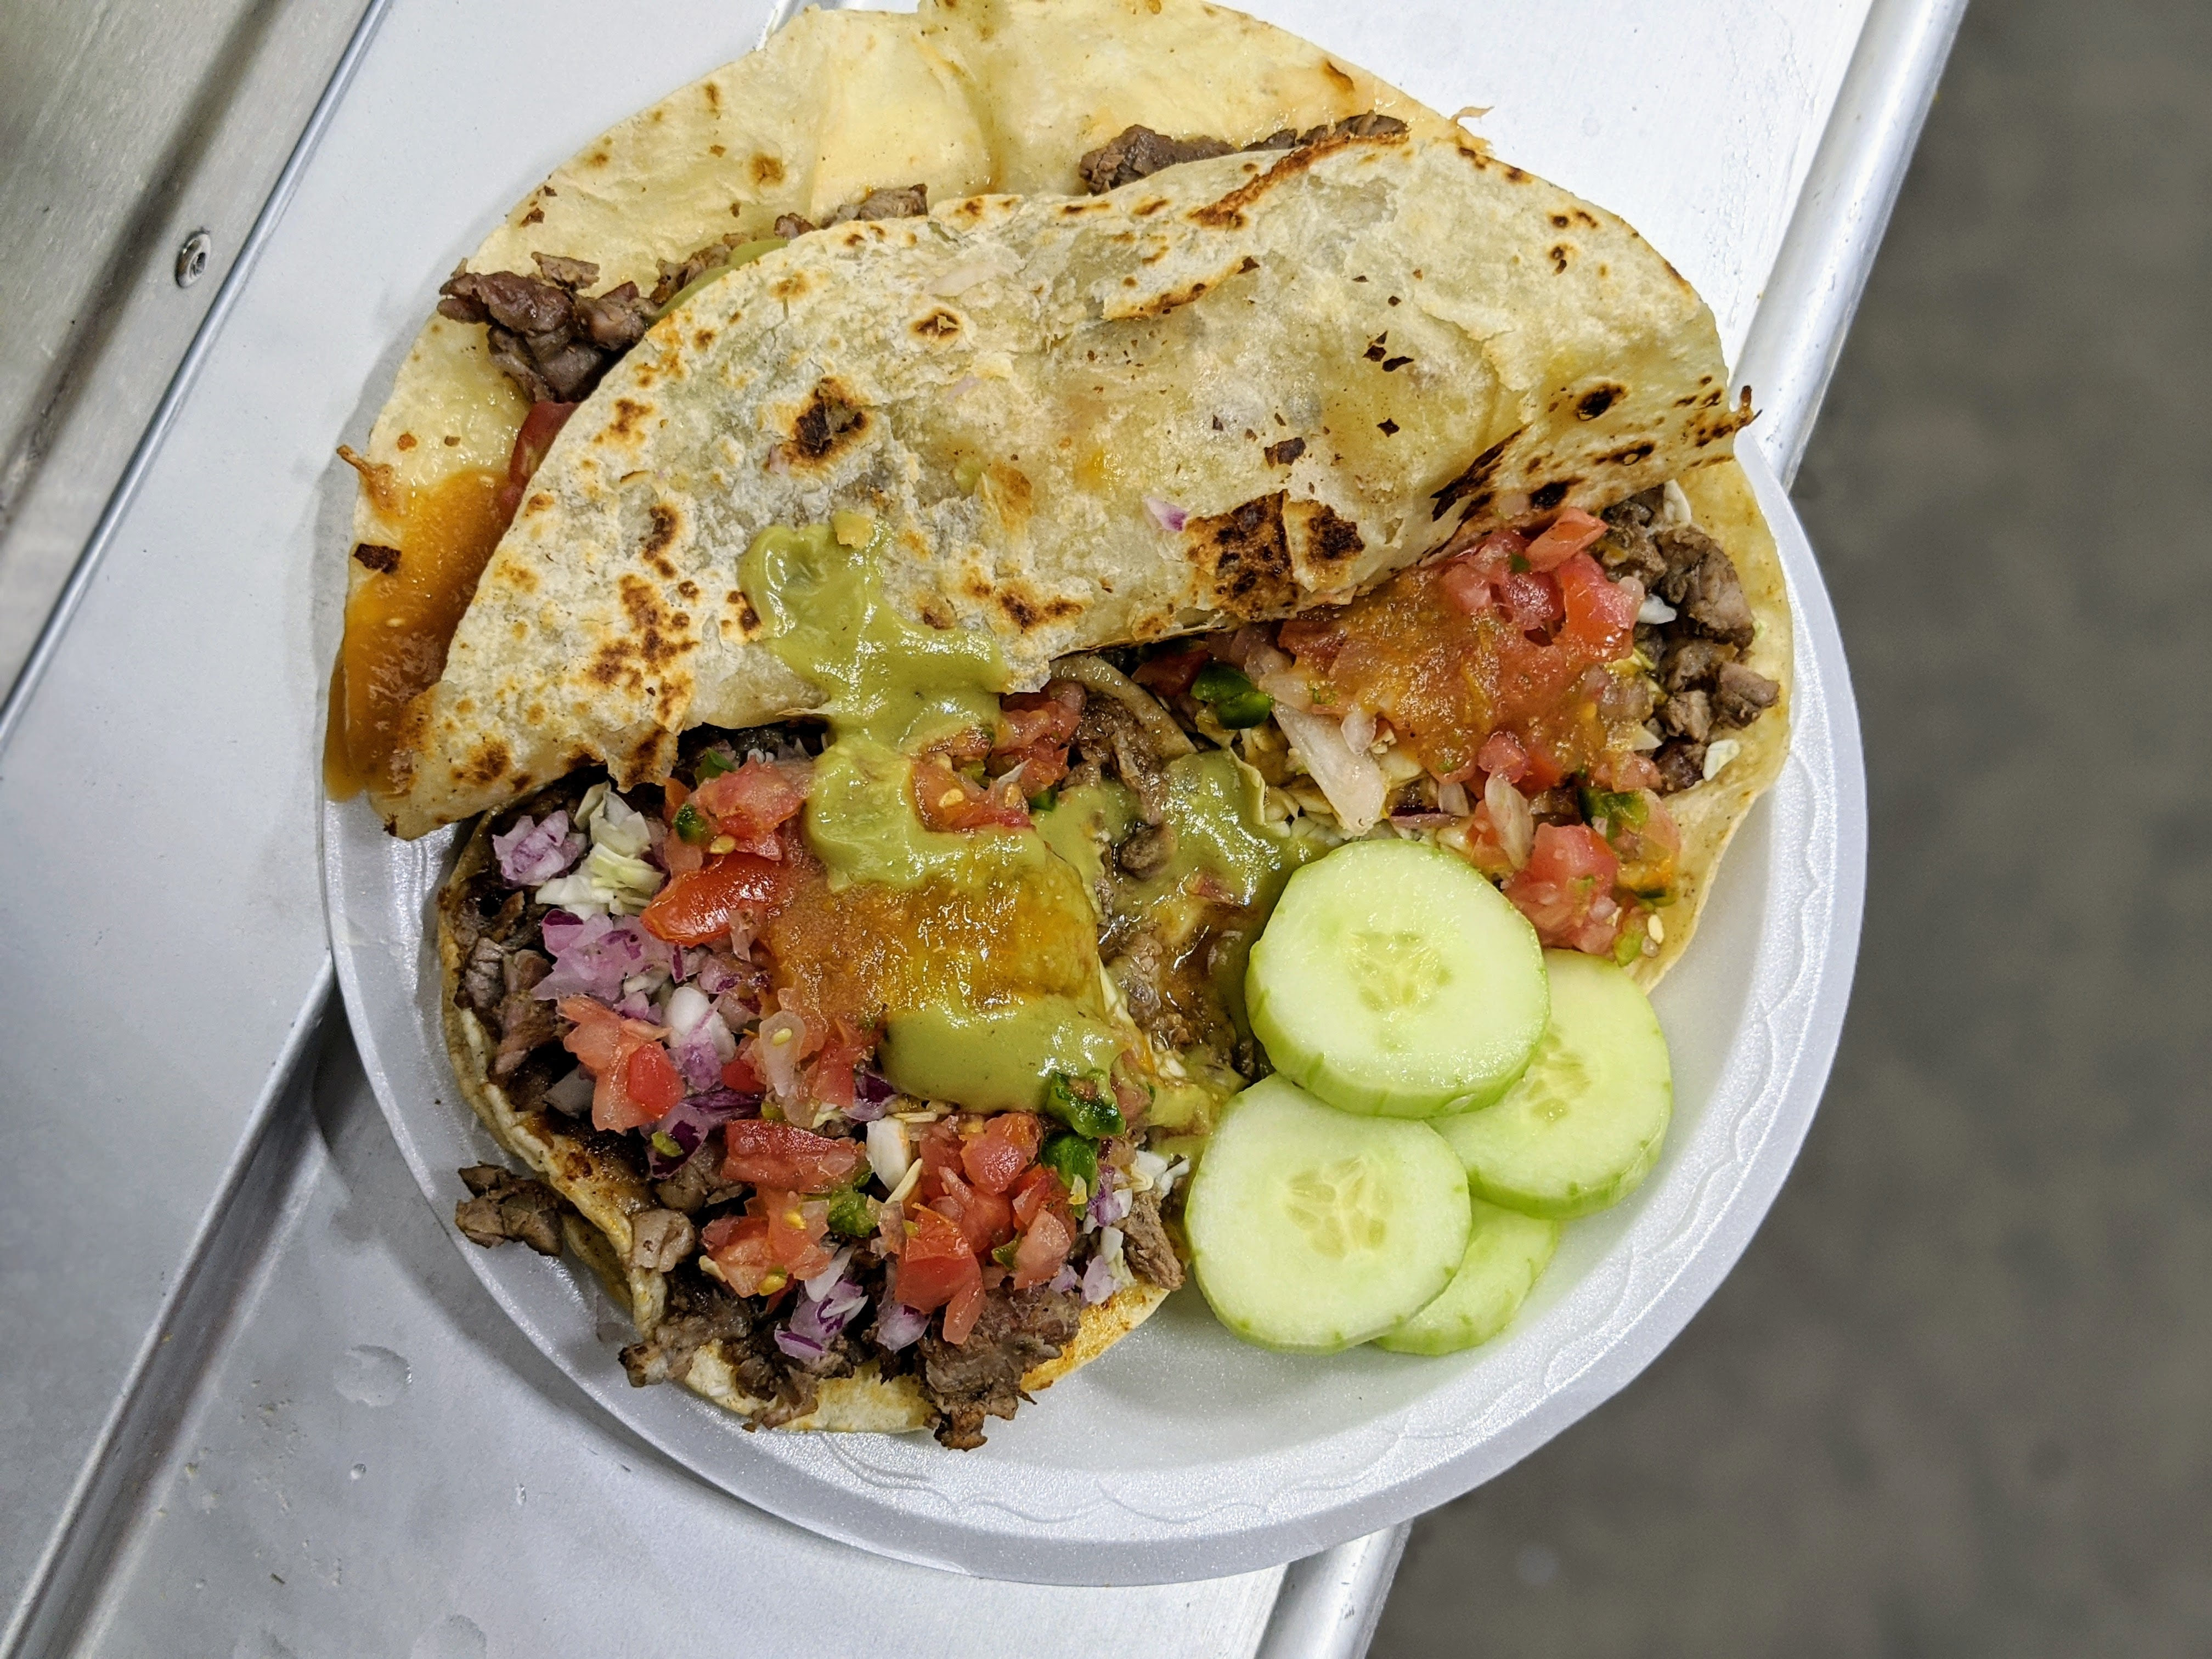 Carne asada tacos and quesadilla from La Carreta on a plastic plate on a food truck in Long Beach